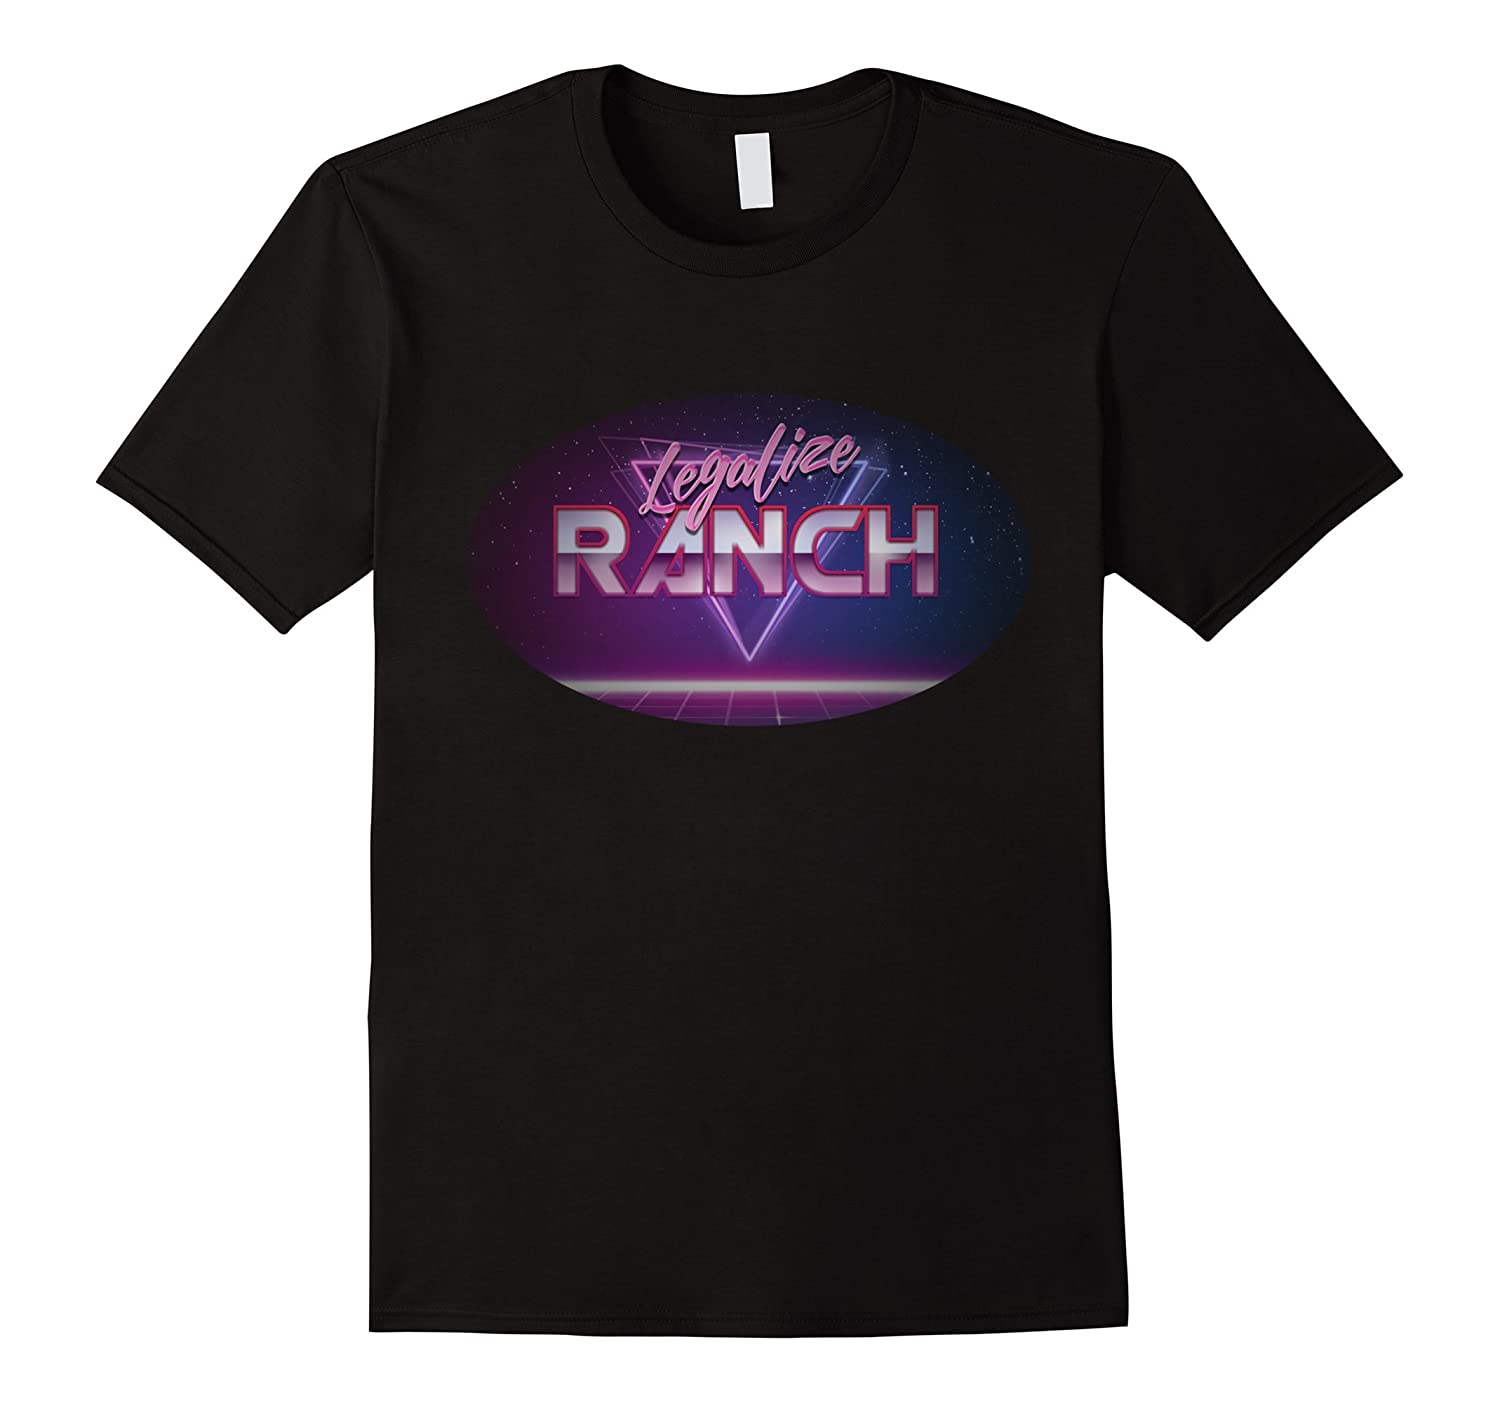 Legalize Ranch 80's T-shirt-FL